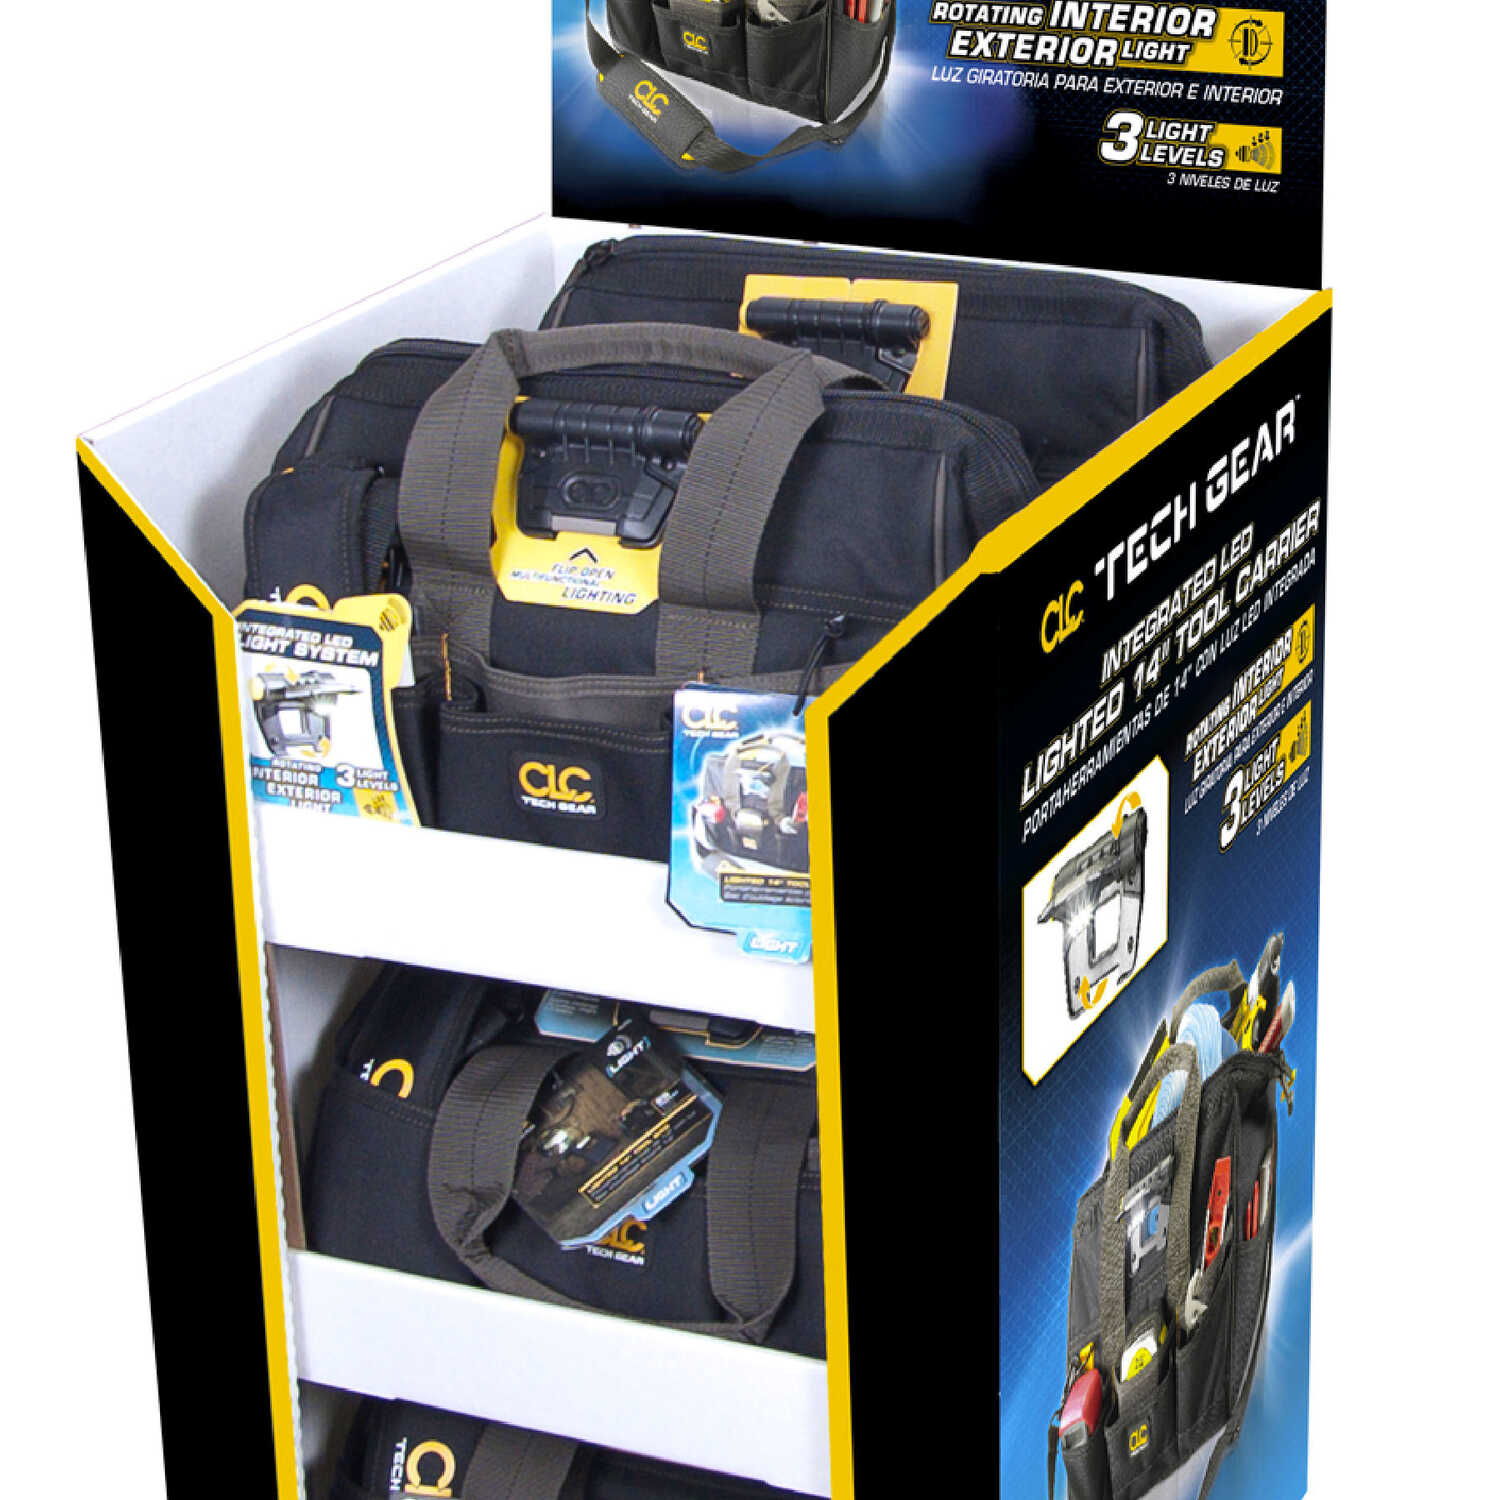 CLC  5.5 in. W x 13.25 in. H Polyester  Lighted Tool Bag  29 pocket Black  1 pc.